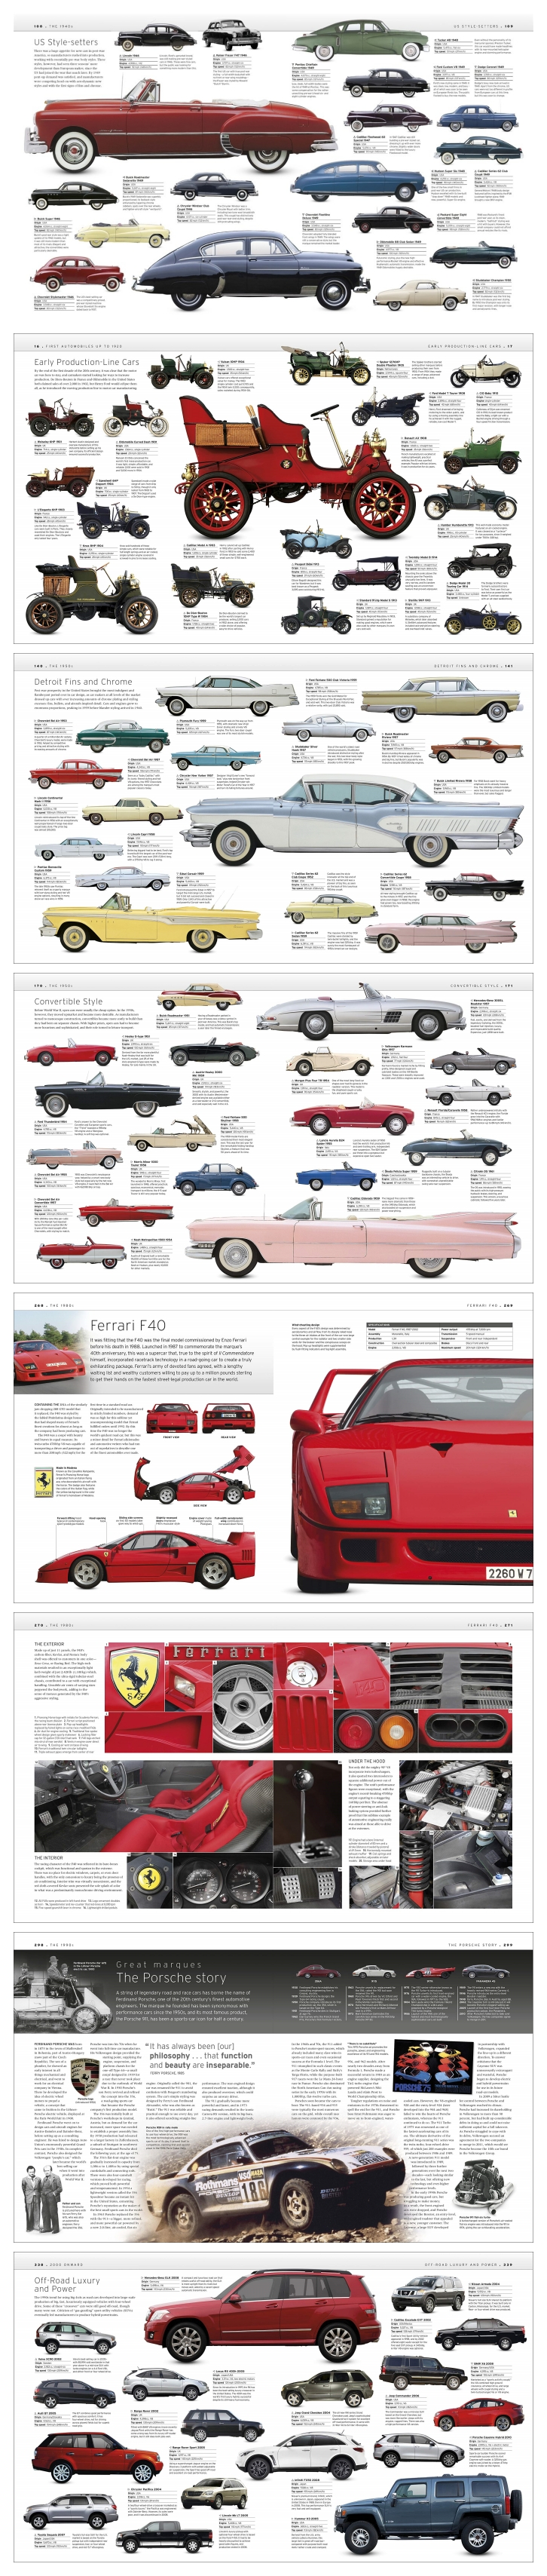 Car: The Definitive Visual History of the Automobile 도서 상세이미지